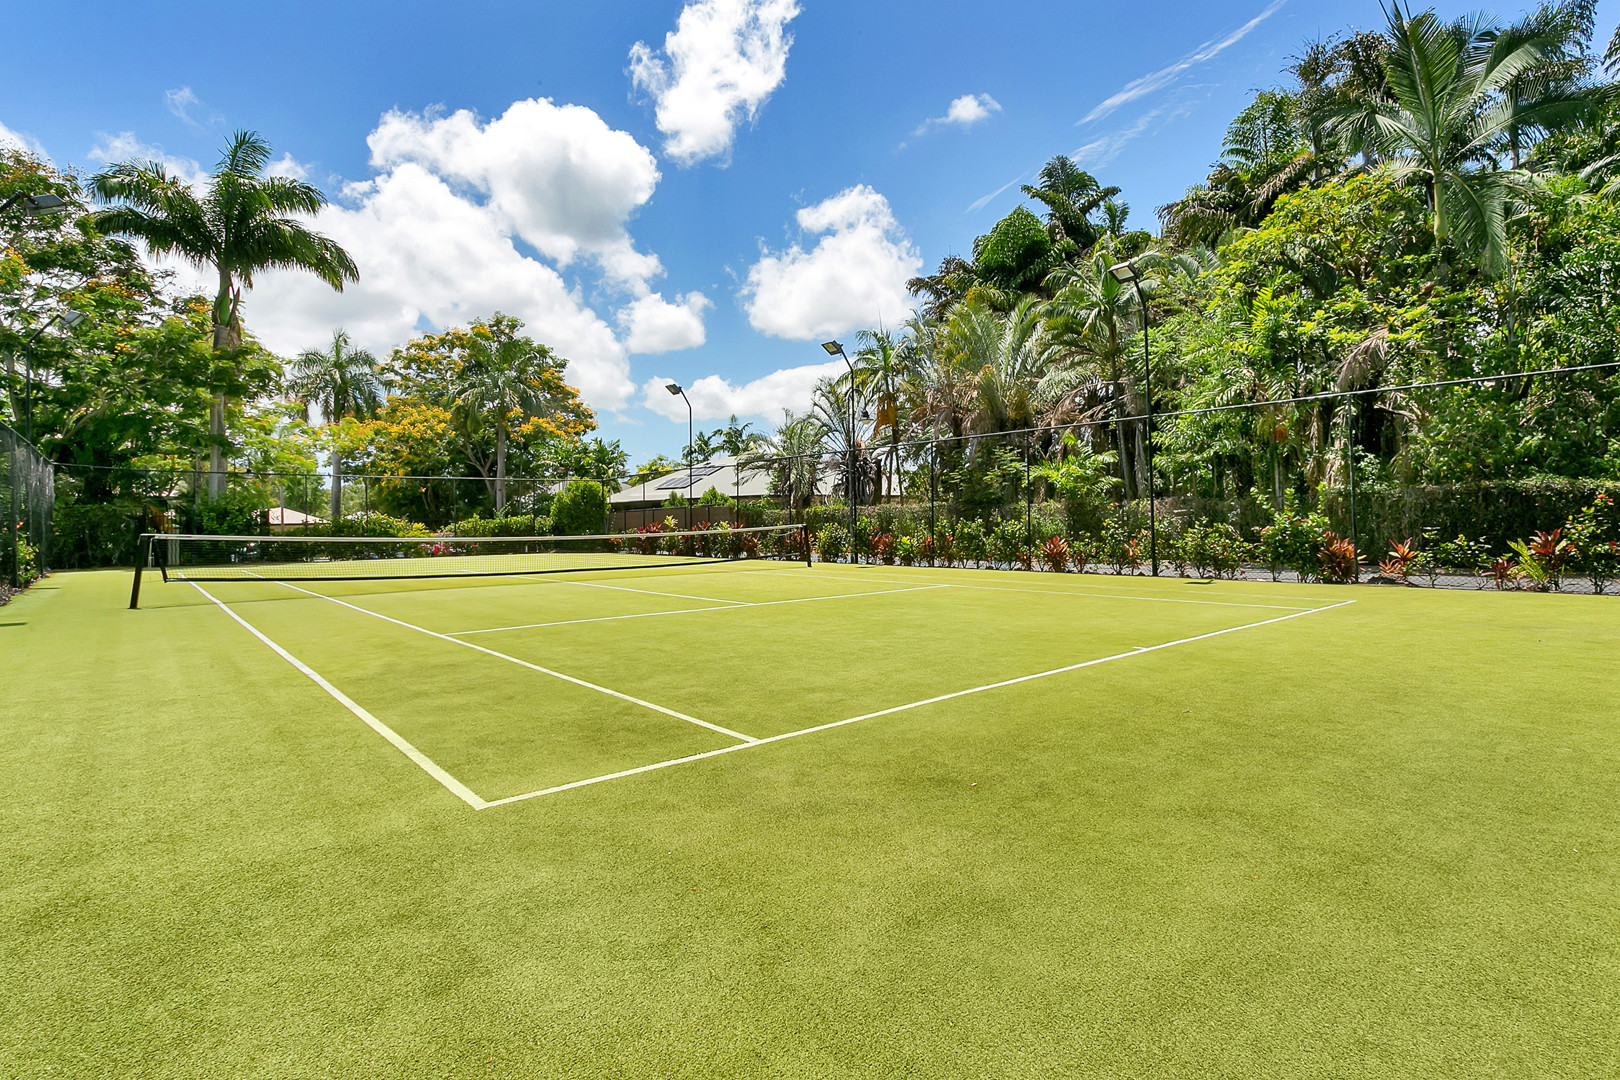 TrinityLinks_Tennis Court.jpg